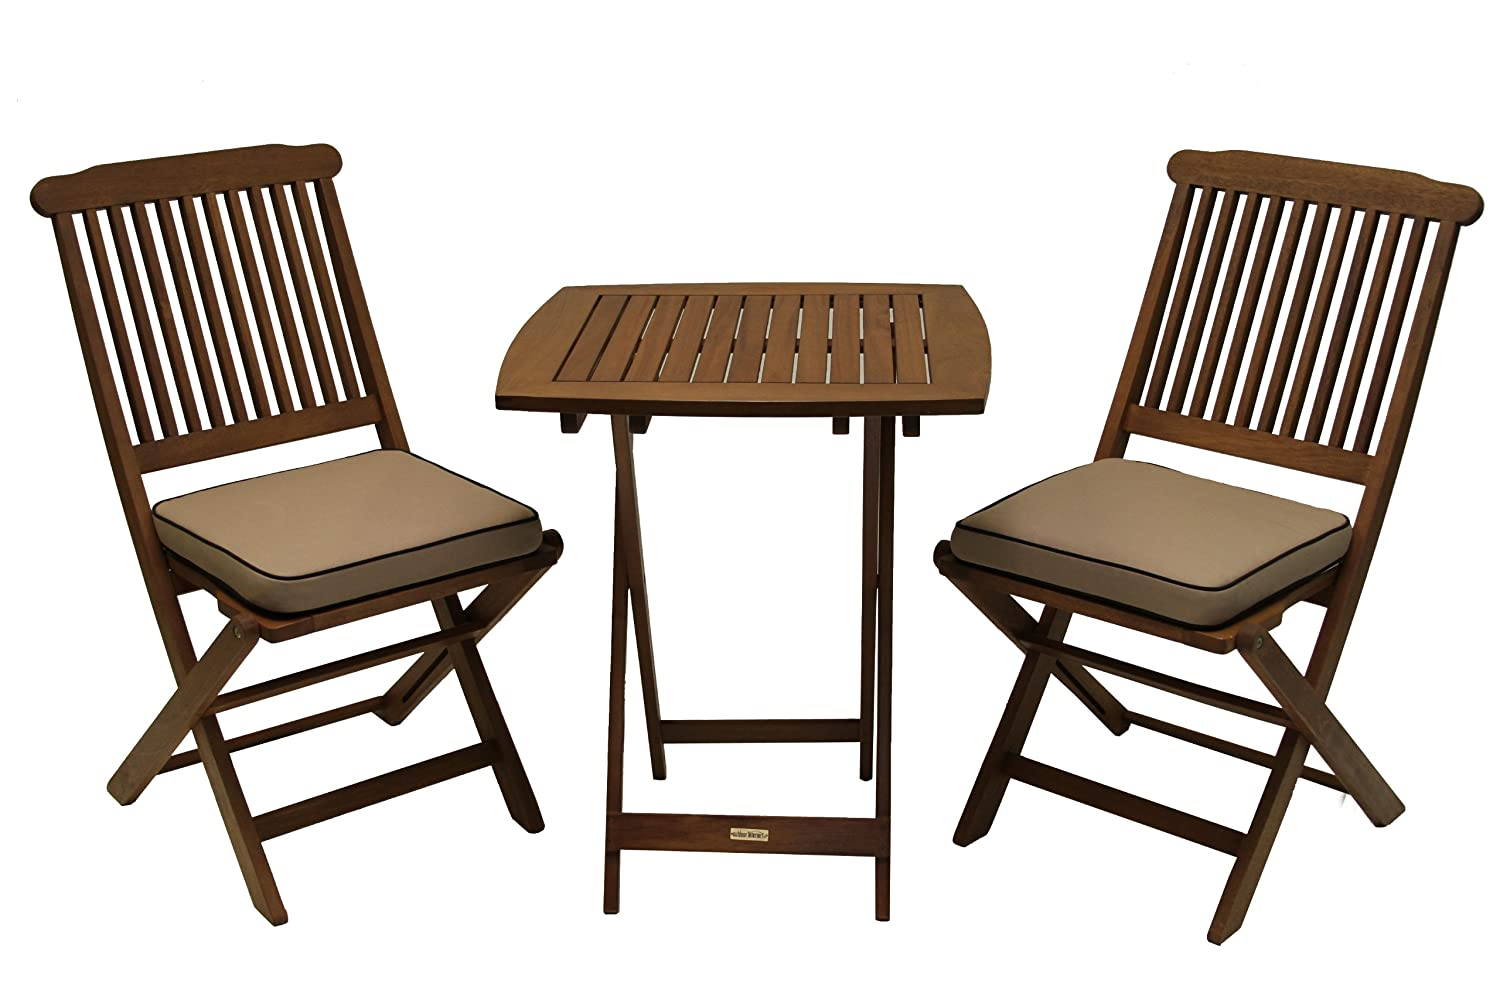 Amazon.com: Wood - Patio Furniture Sets / Patio Furniture